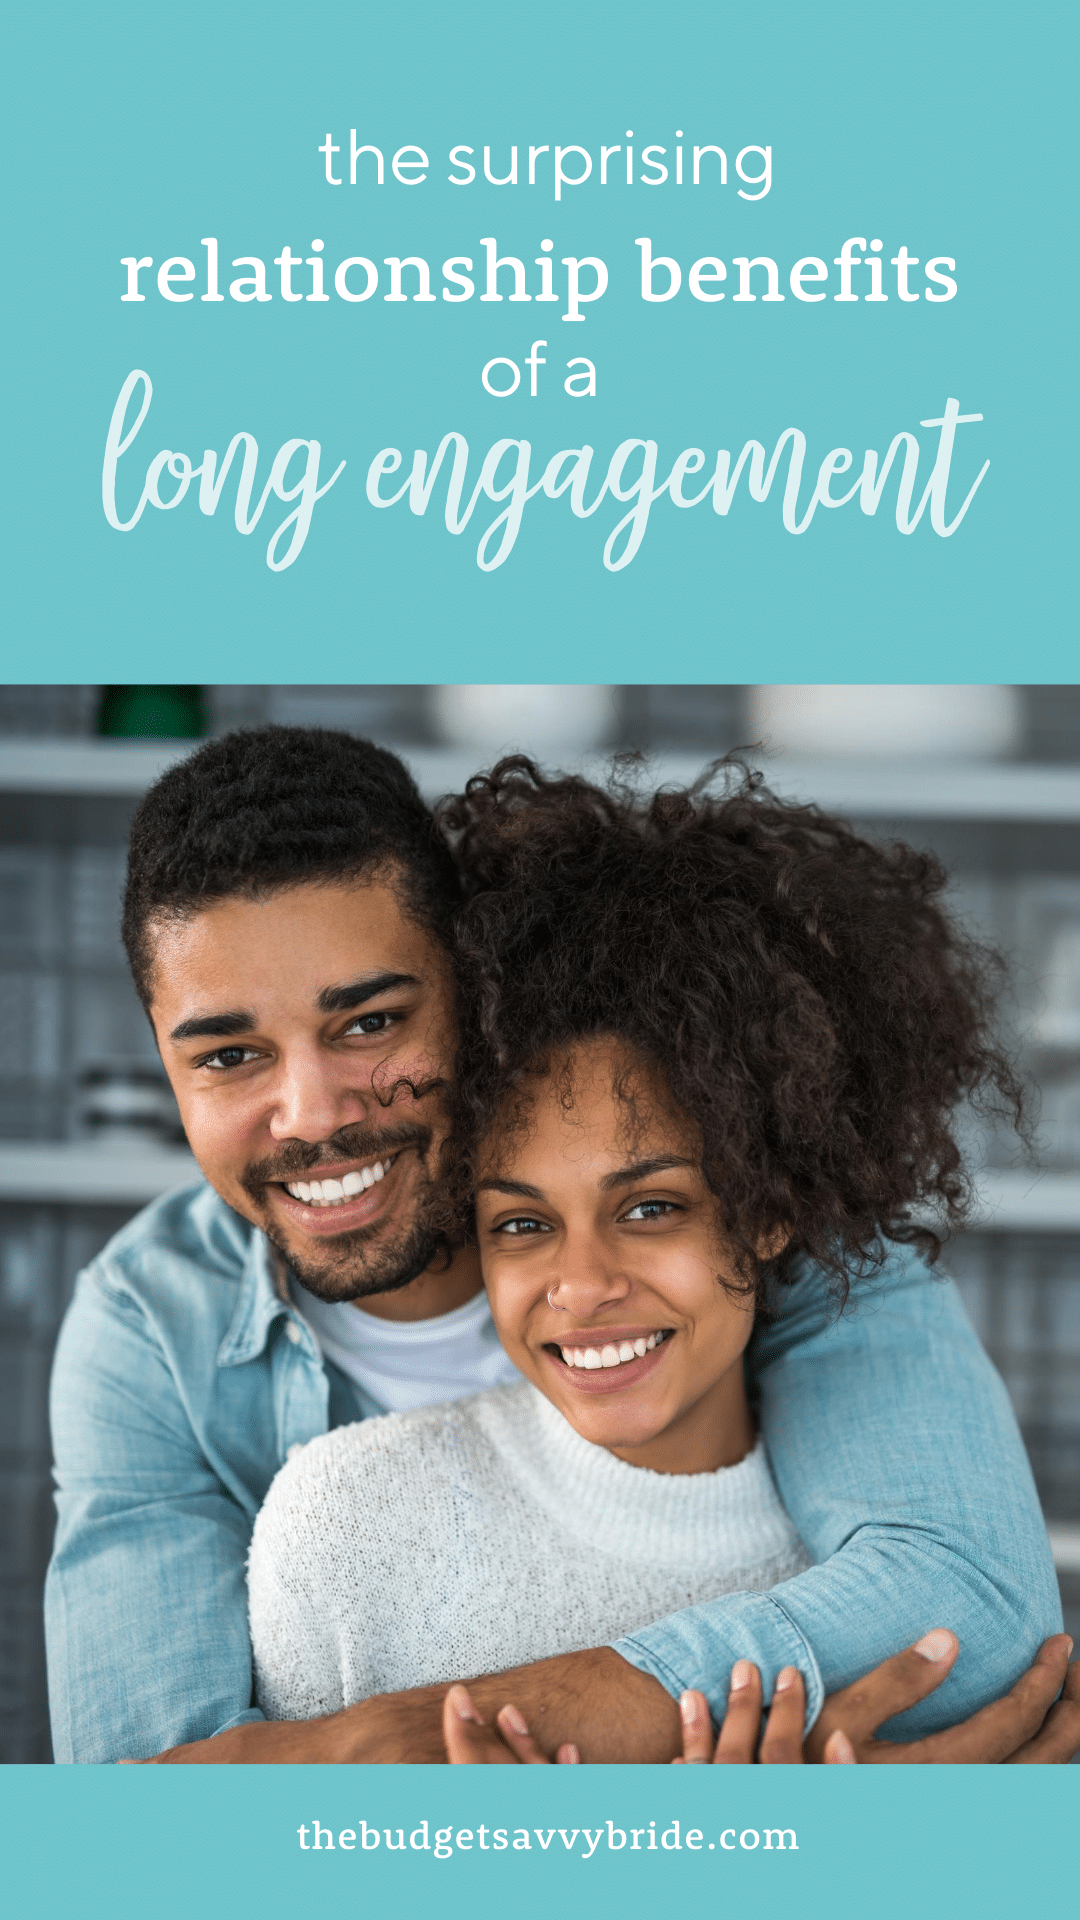 the surprising relationship benefits of a long engagement